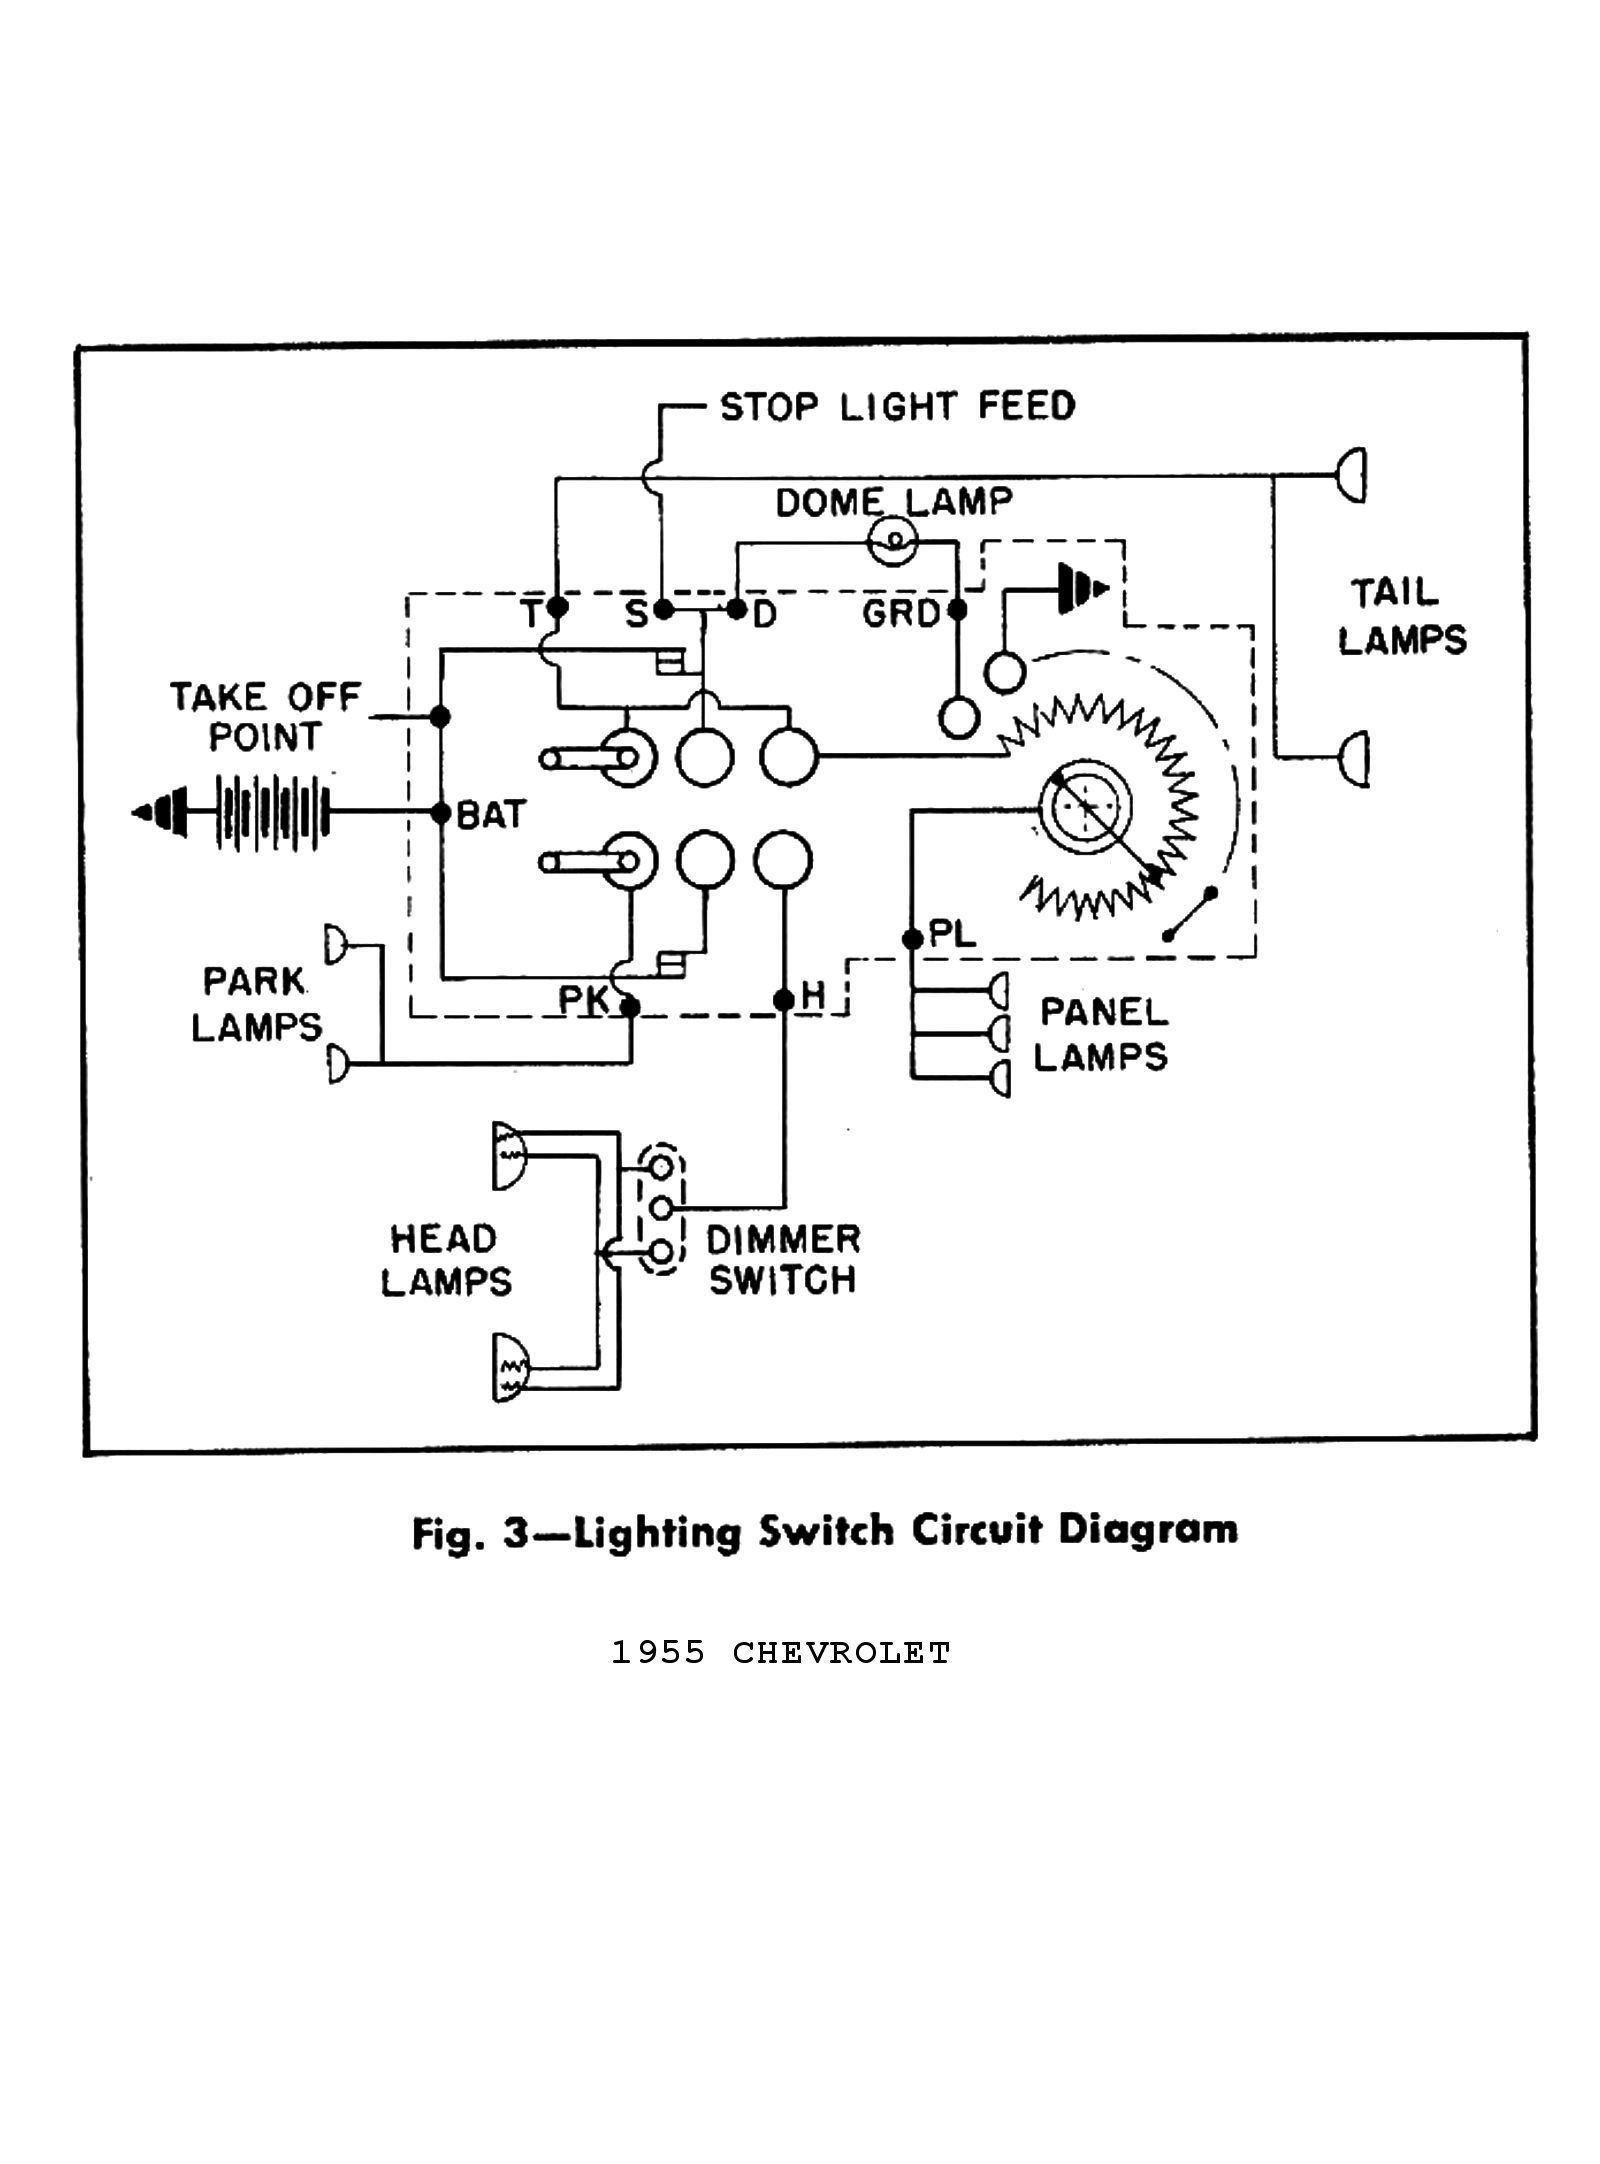 hight resolution of 1955 chevy wiring harness 1955 chevy truck ignition switch wiring1955 chevy wiring wiring diagram 1955 chevy